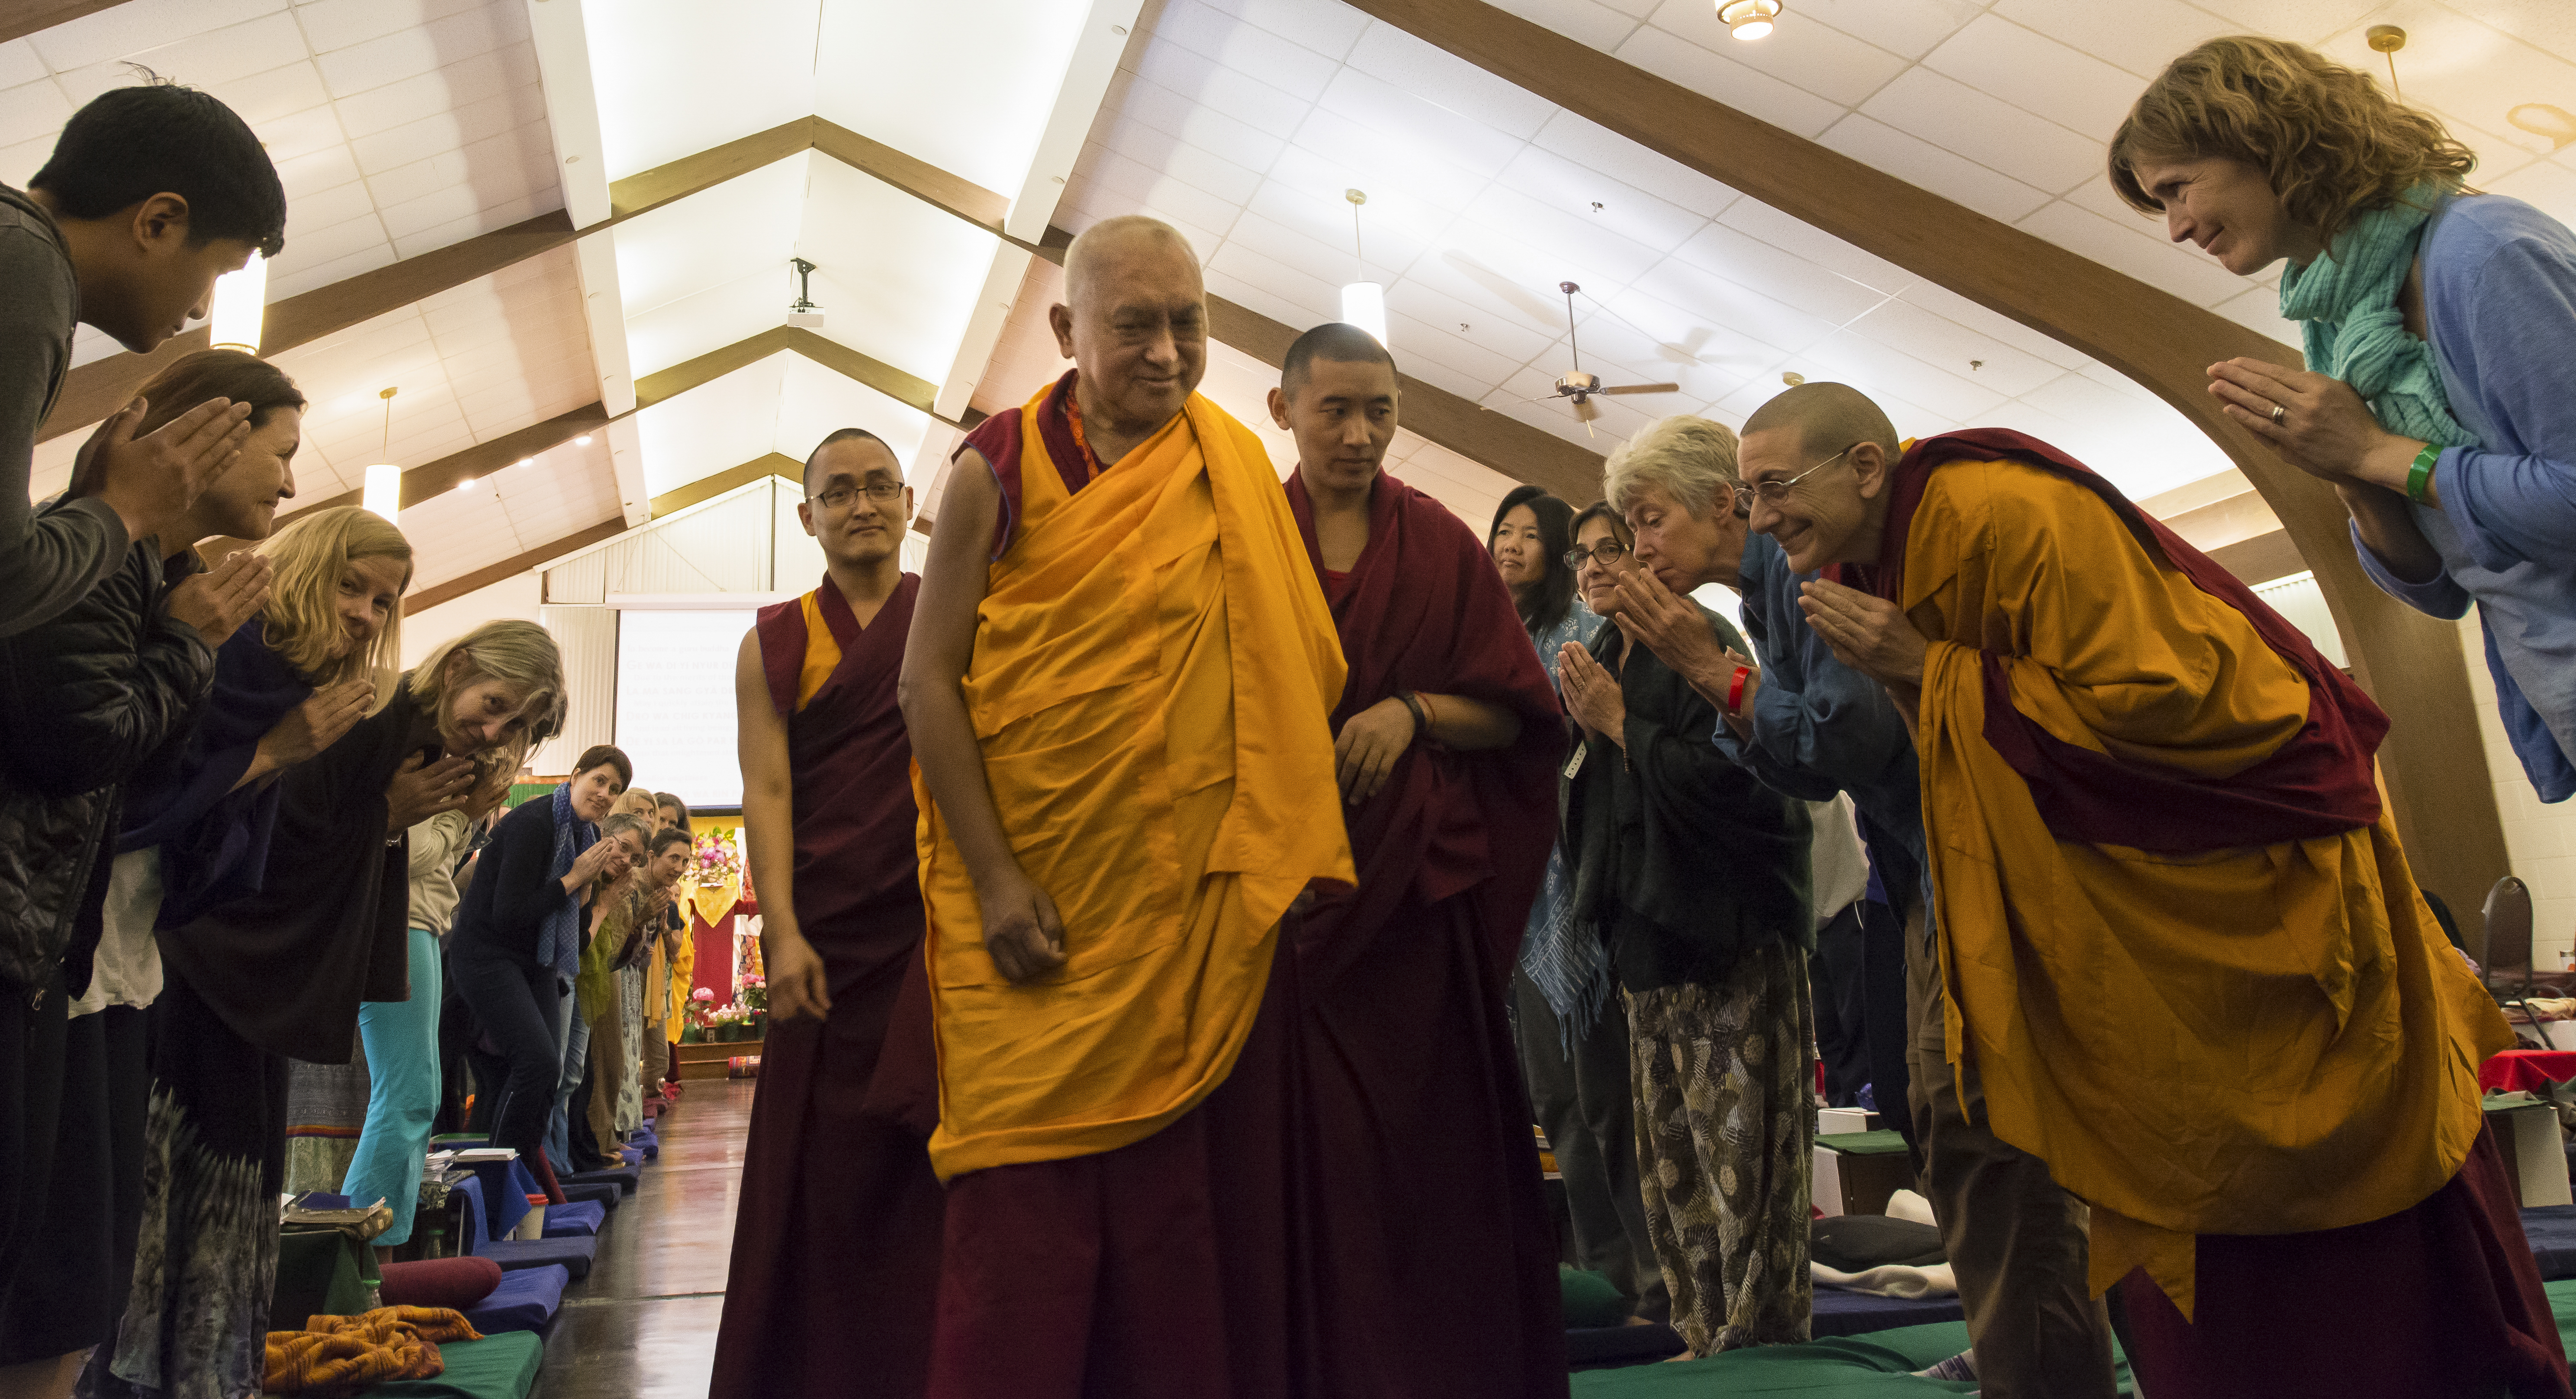 Rinpoche entering the venueat Light of the Path 2014. (Photo Roy Harvey)